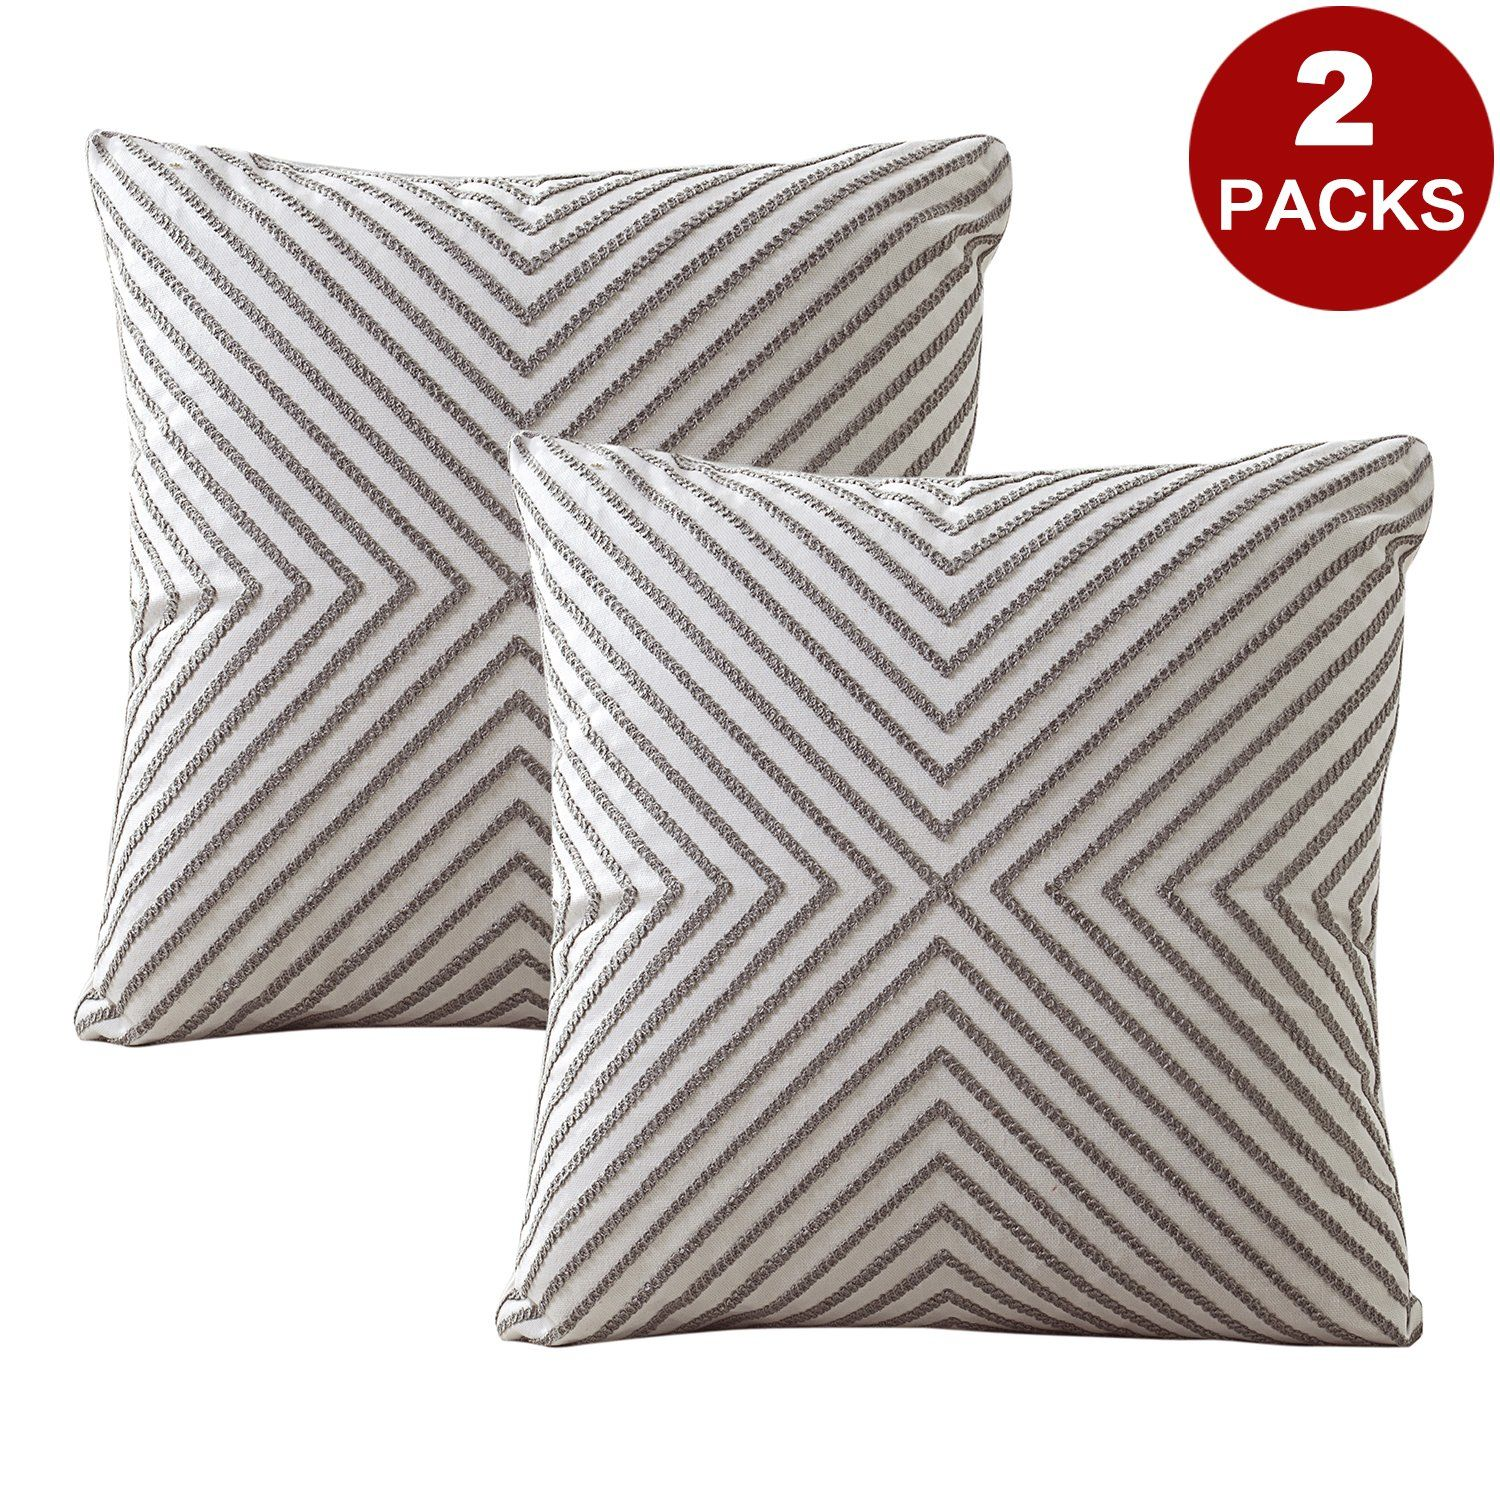 Lifonder Embroidered Cushion Covers Pillow Cases Home Decor Accent Gray Line Stripe Pattern Cotton Canvas Throw Pi In 2020 Embroidered Cushions Pillow Covers Pillows